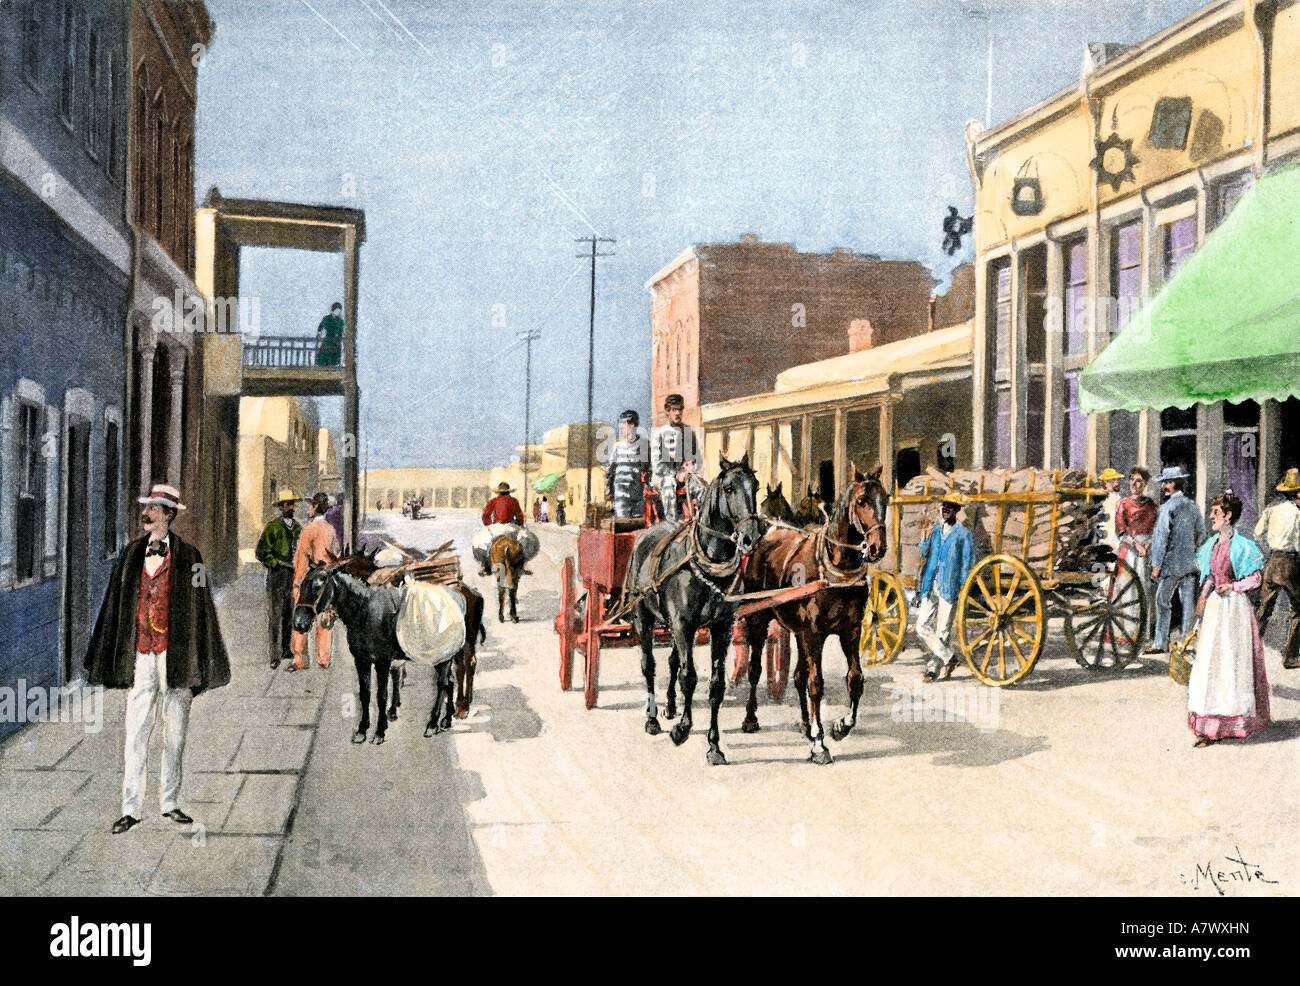 Horse-drawn wagons near the Plaza in Santa Fe New Mexico Territory 1890s. Hand-colored halftone of an ilustration - Stock Image